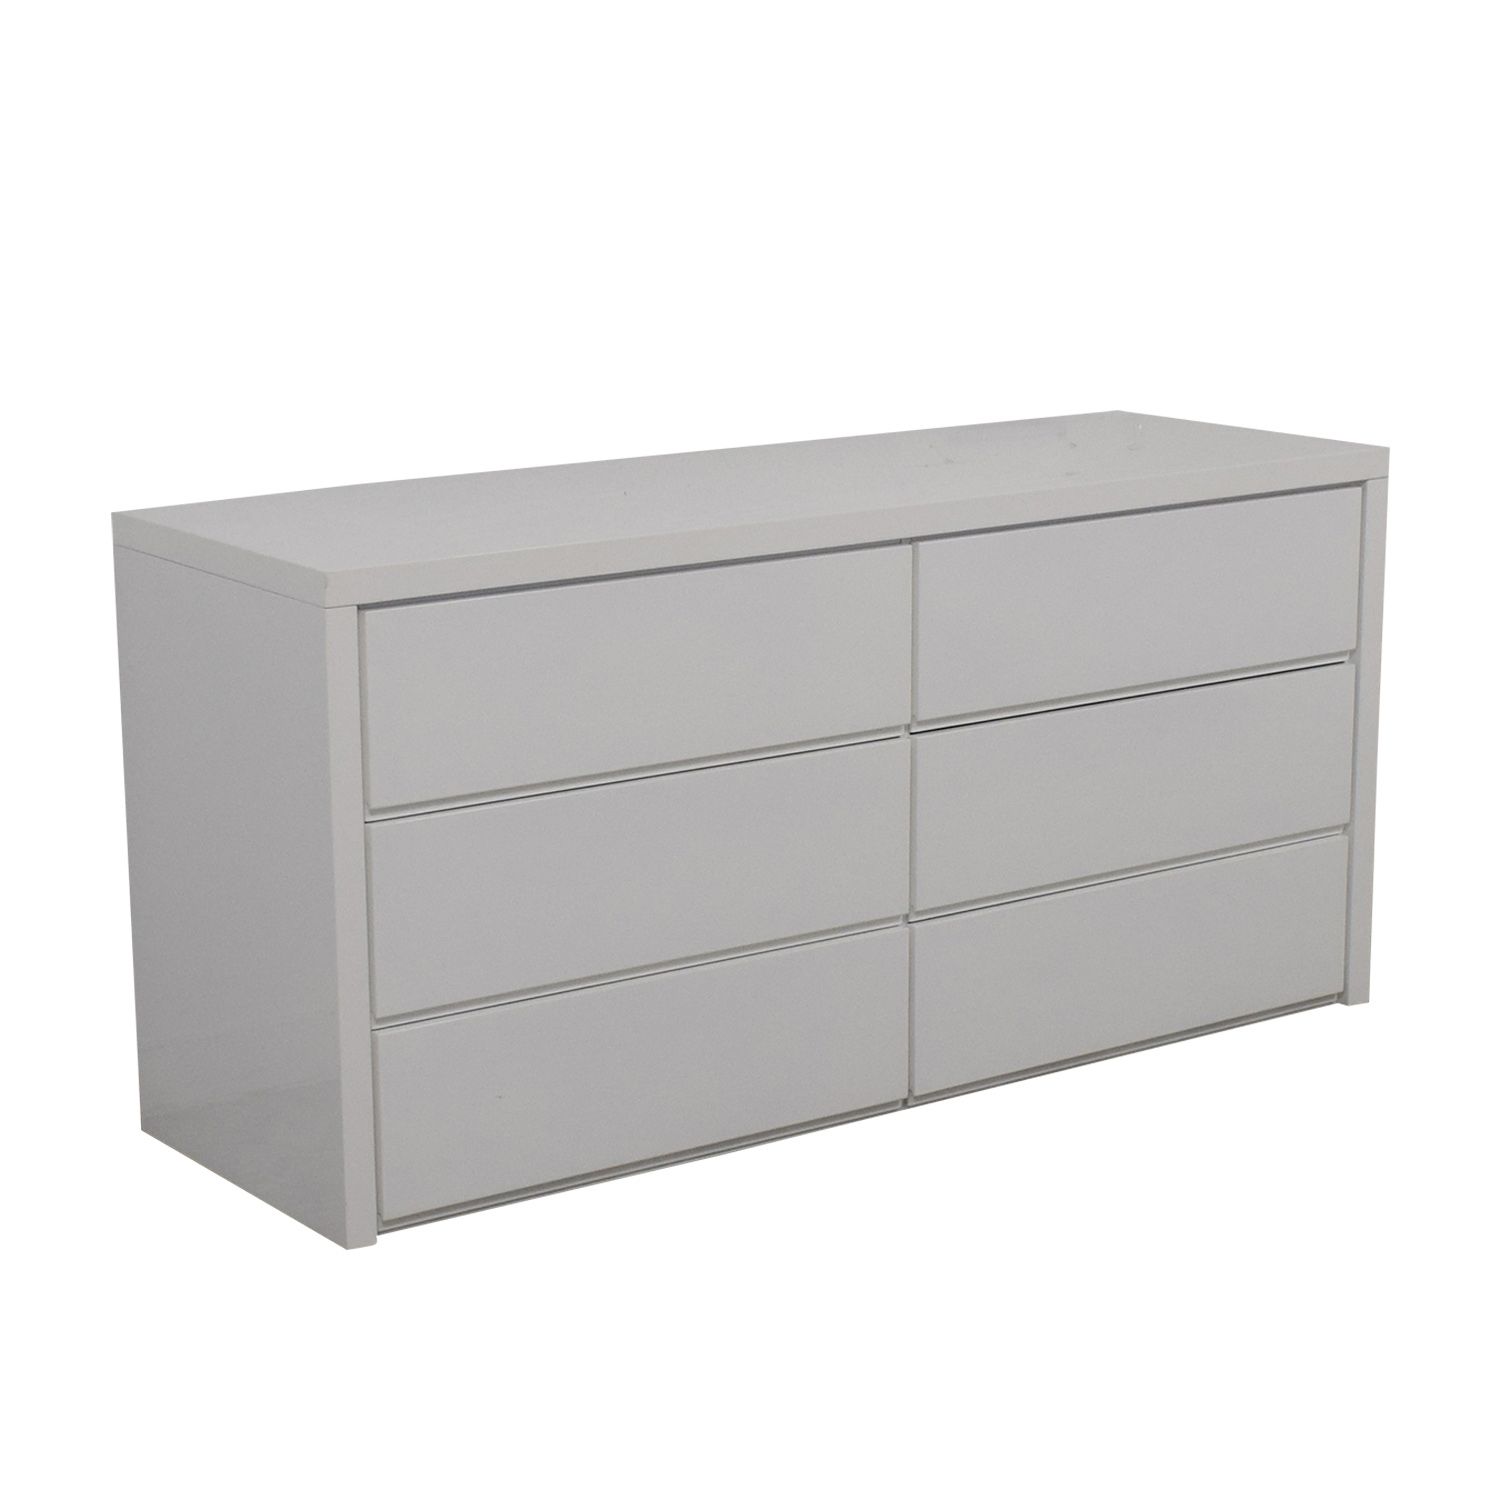 Modani Modani Dino White Six-Drawer Dresser for sale